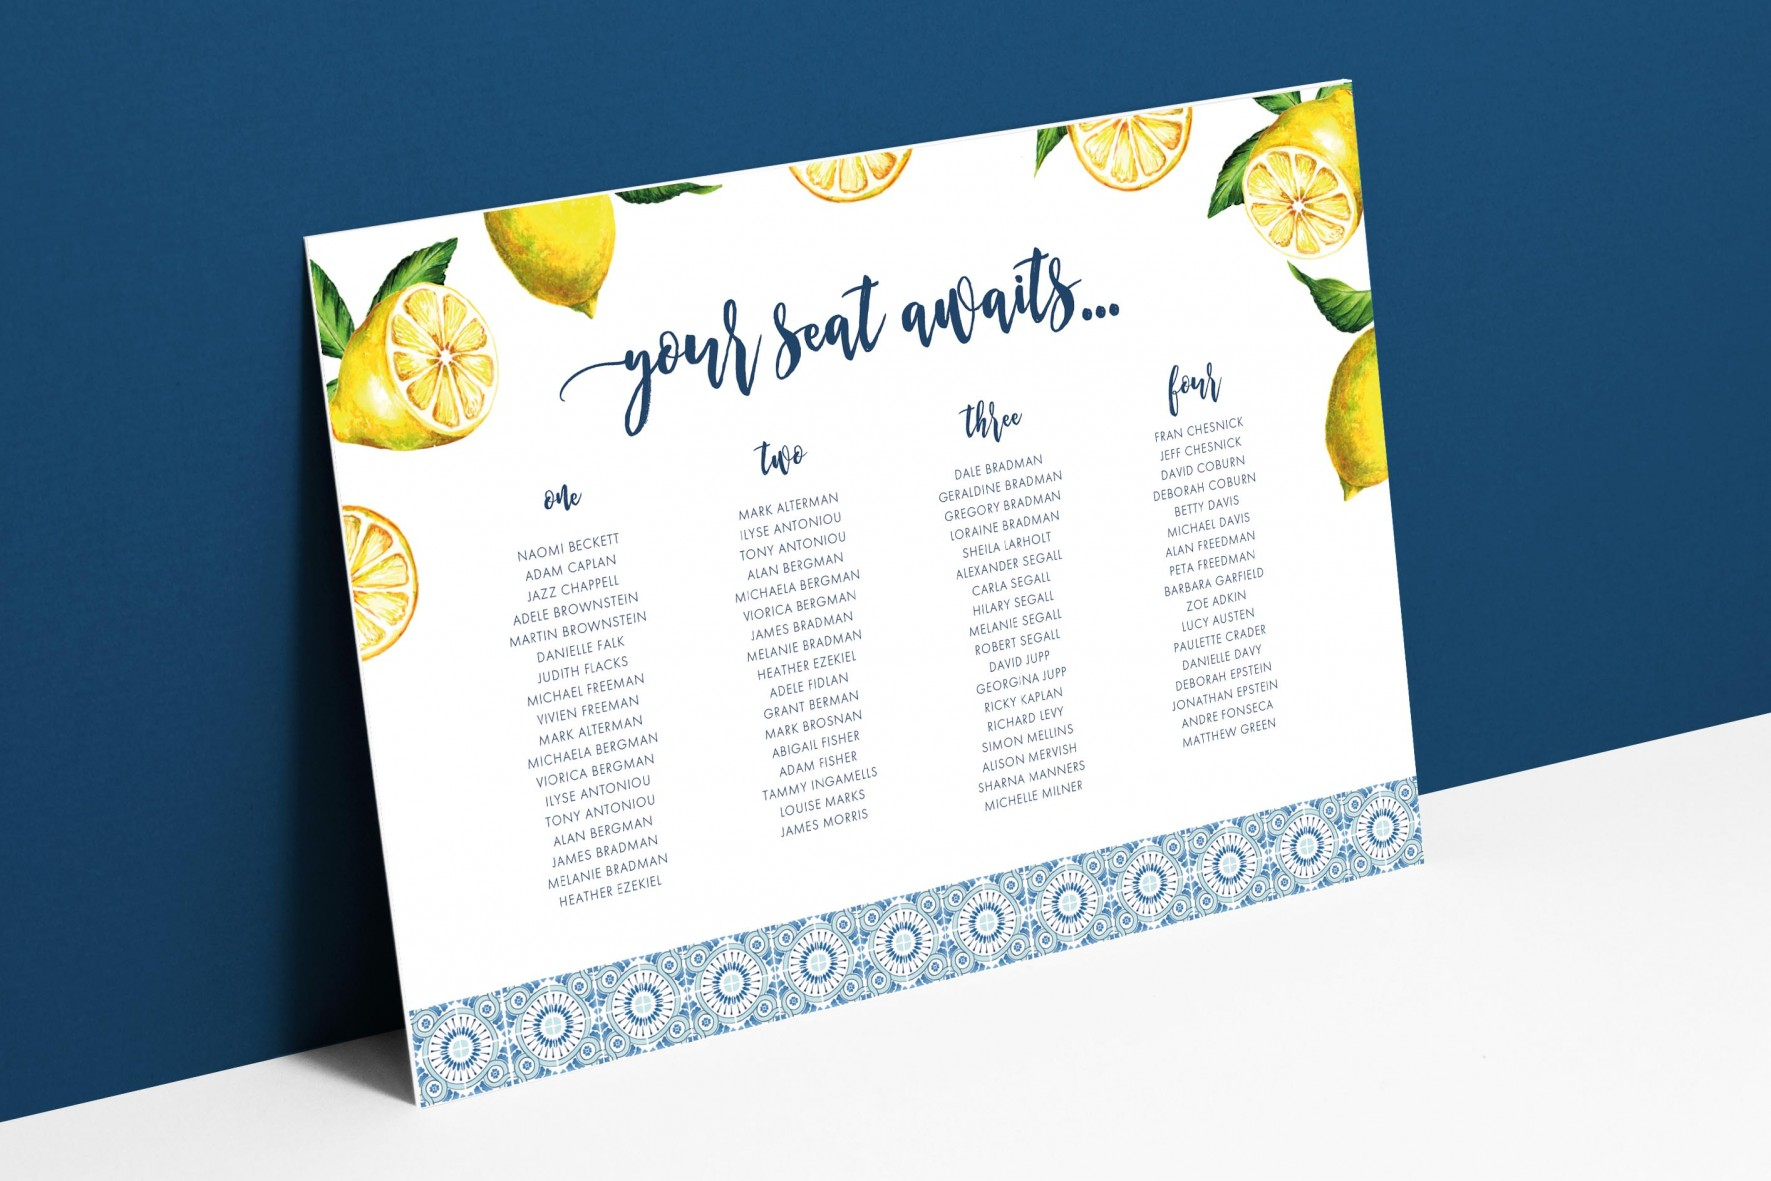 Portuguese blue tile and lemons wedding table plan wedding stationery by www.rosepaperscissors.com